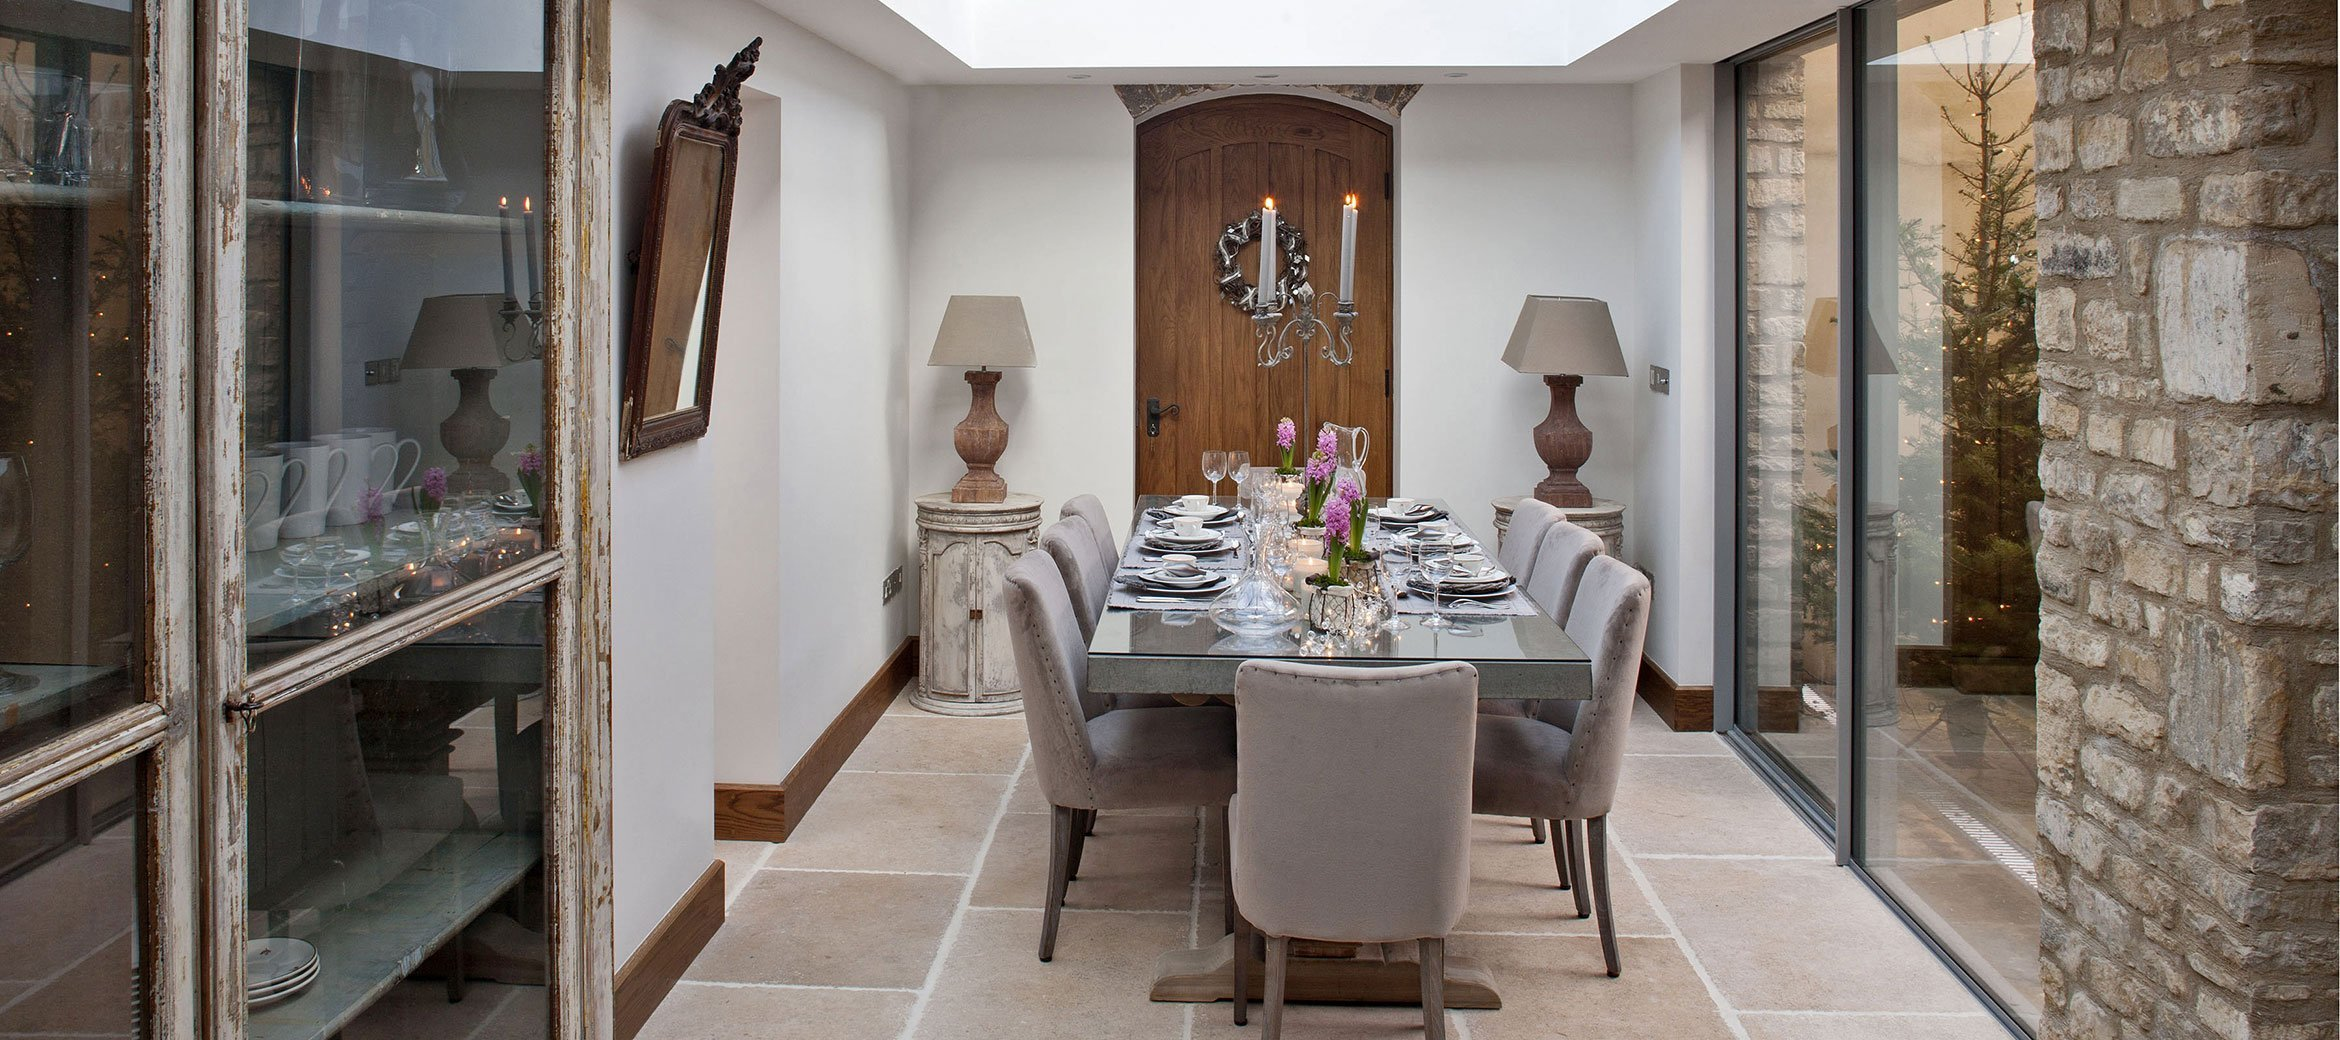 burford-cotswold-cottage-dining-room